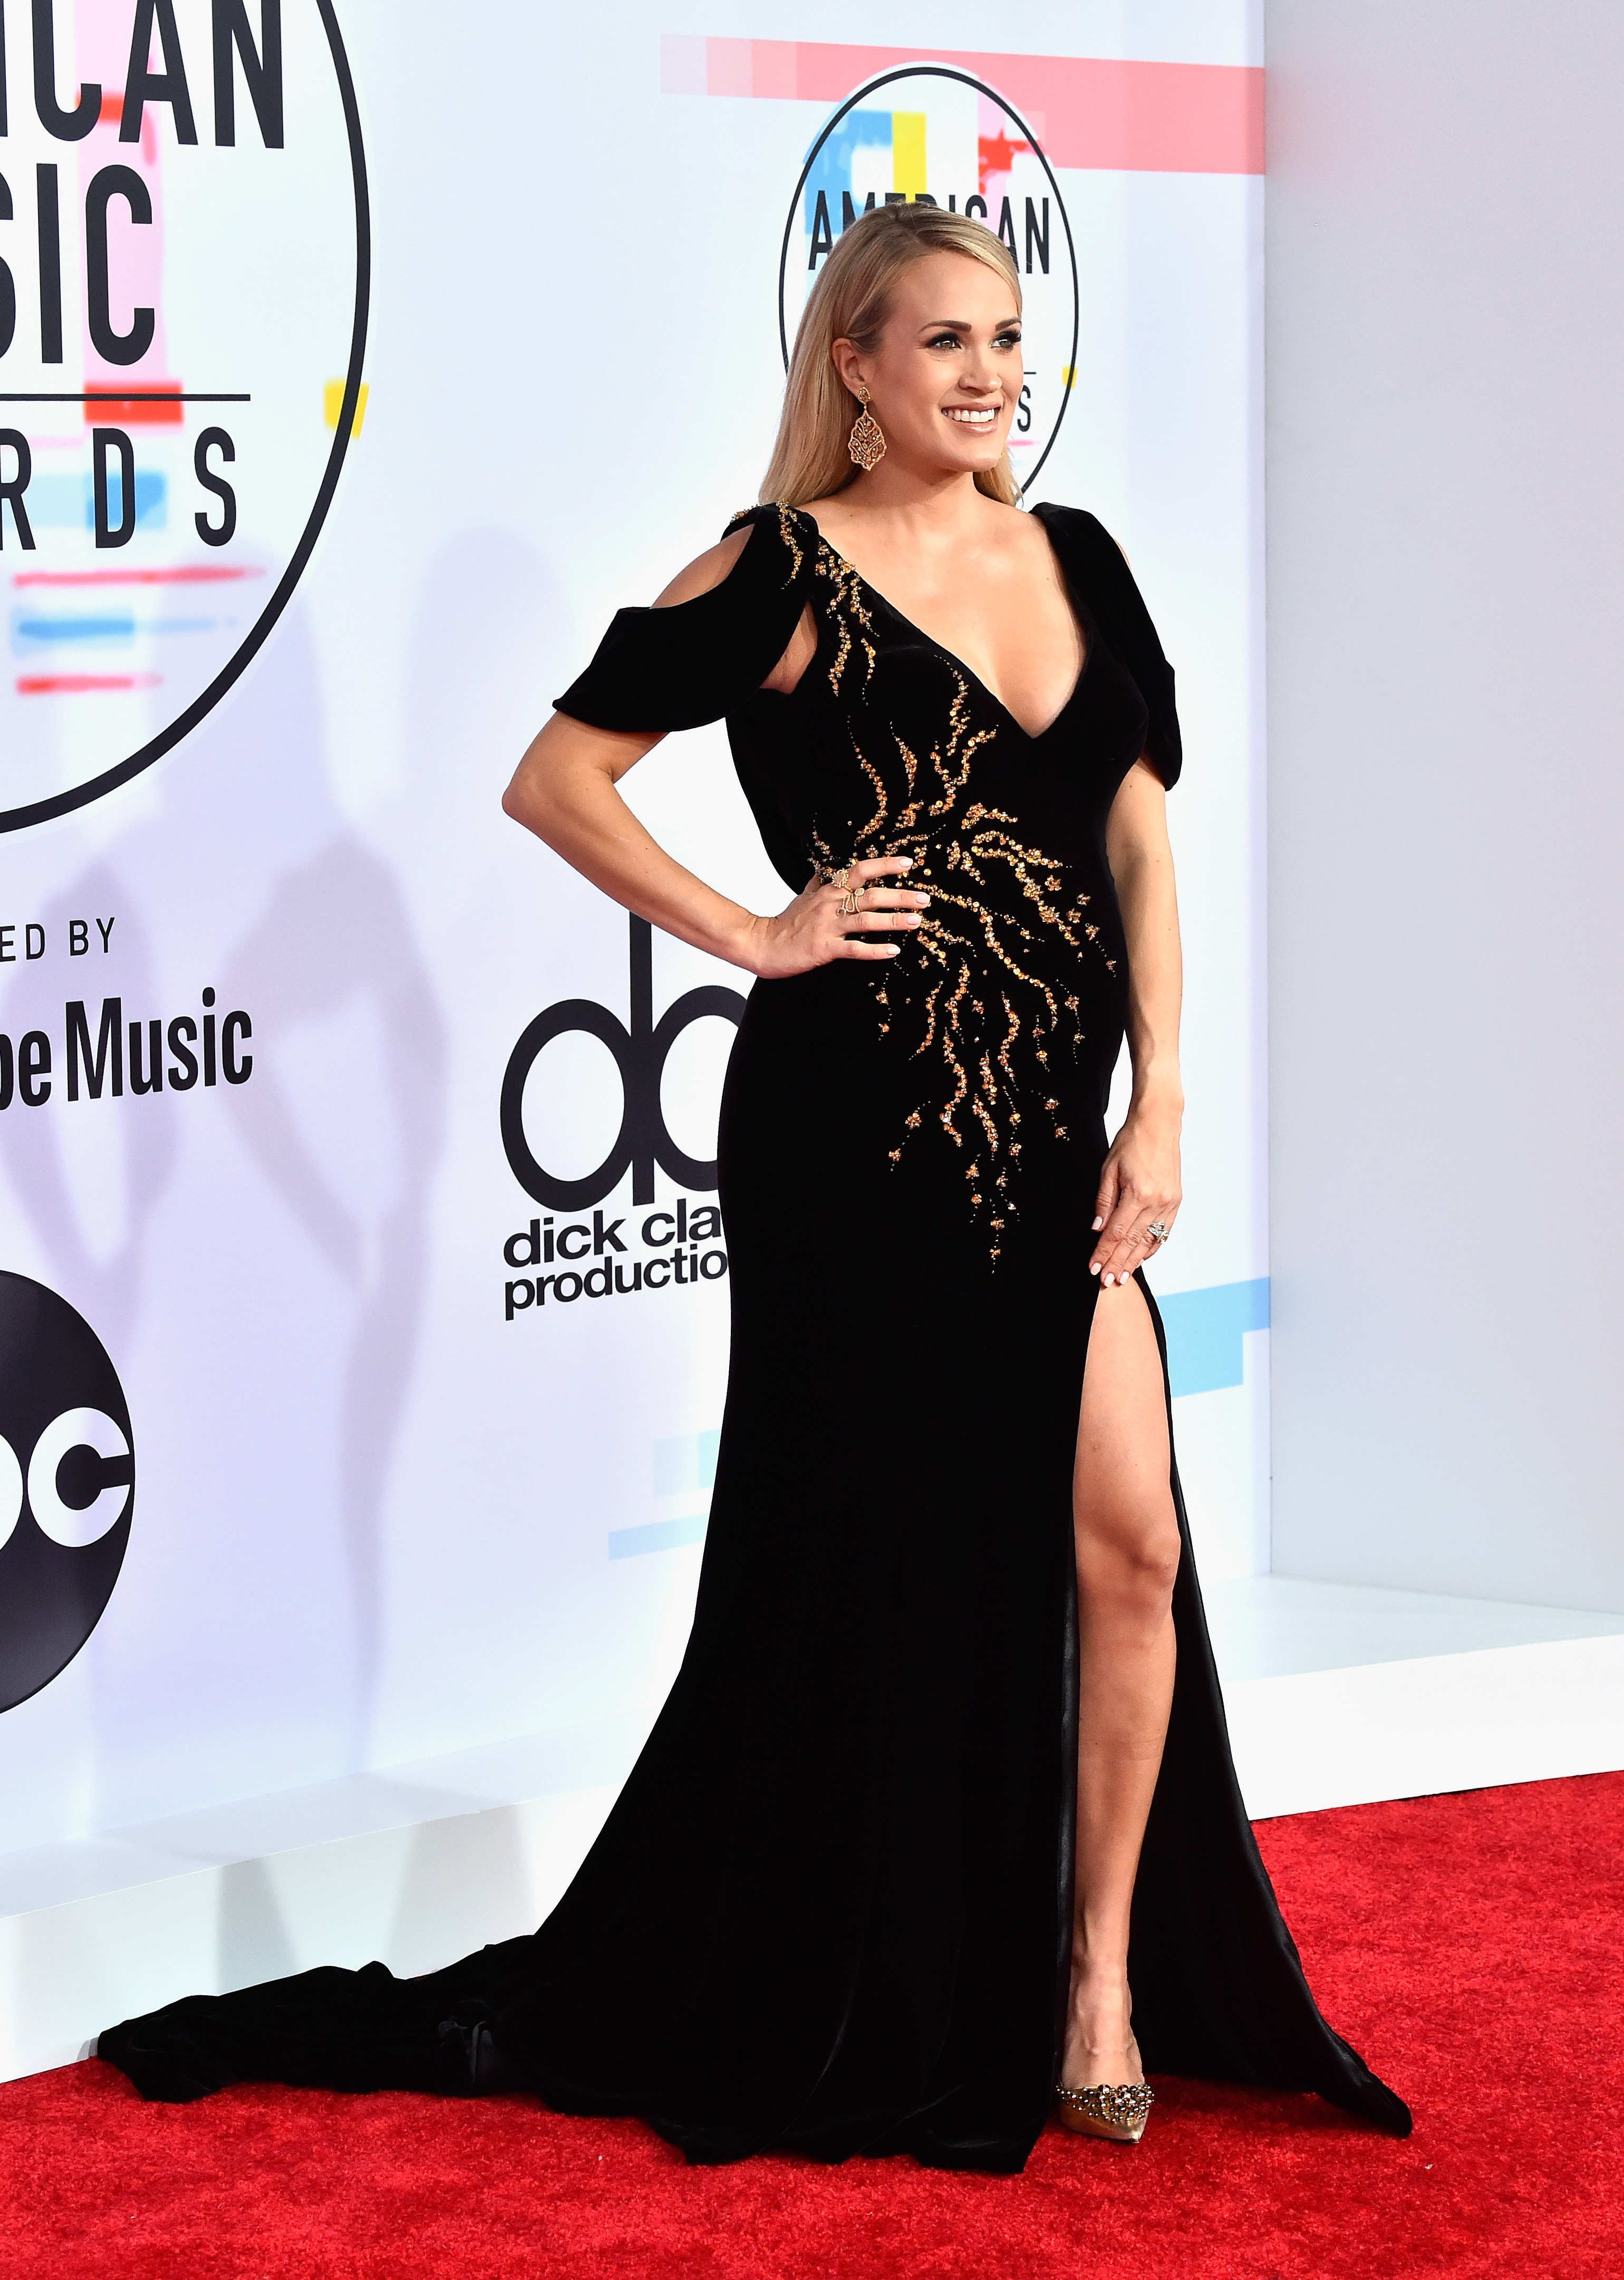 Carrie Underwood At 2018 American Music Awards, Carrie Underwood Baby Bump